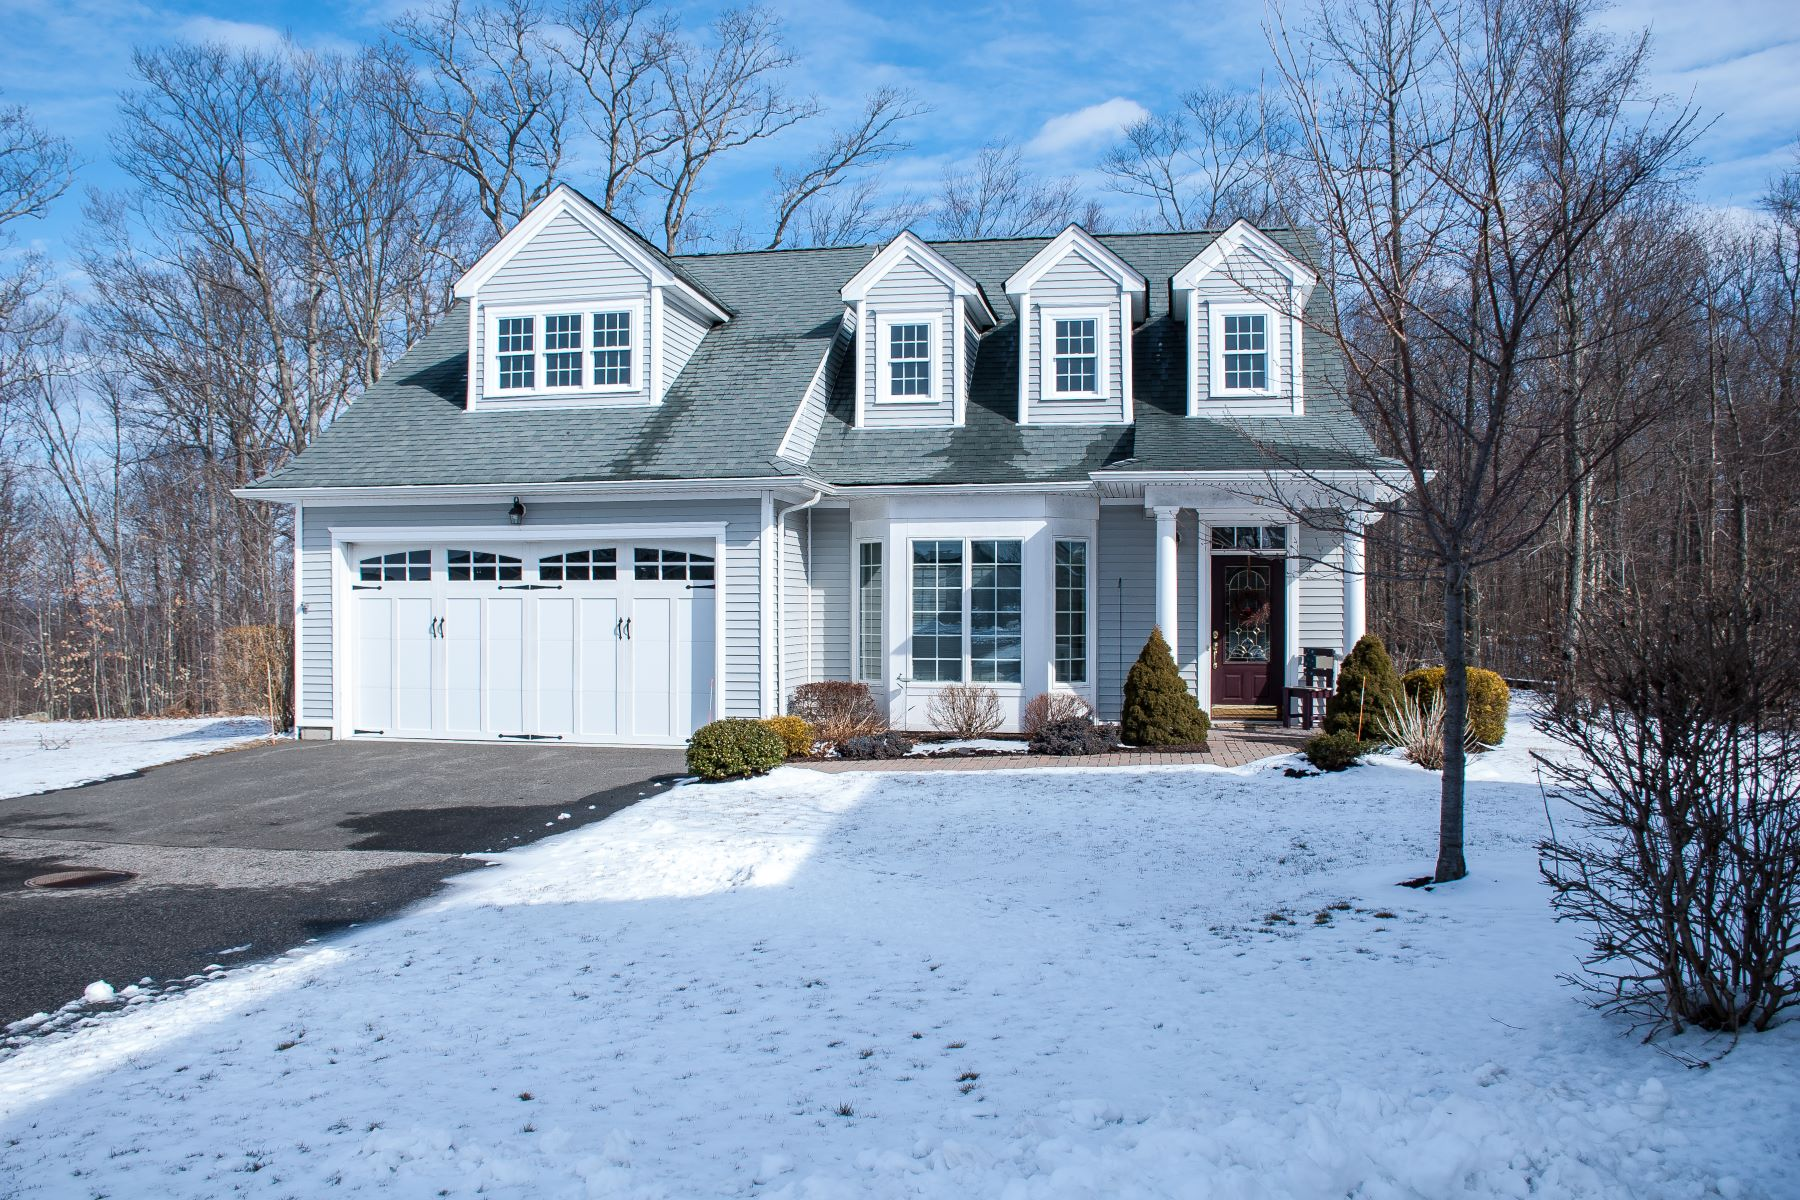 Single Family Homes for Sale at Cambridge Model 37 Chatfield Drive 37, Beacon Falls, Connecticut 06403 United States